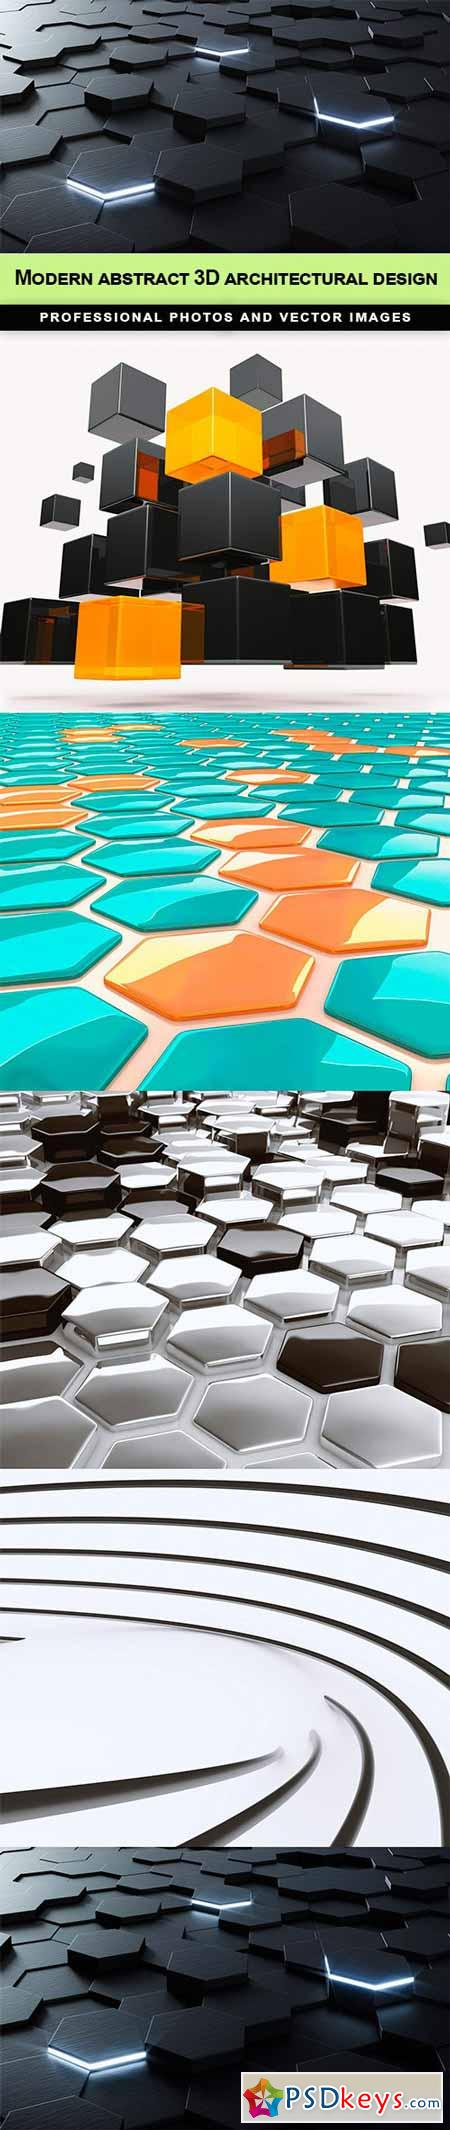 Modern abstract 3D architectural design - 5 UHQ JPEG